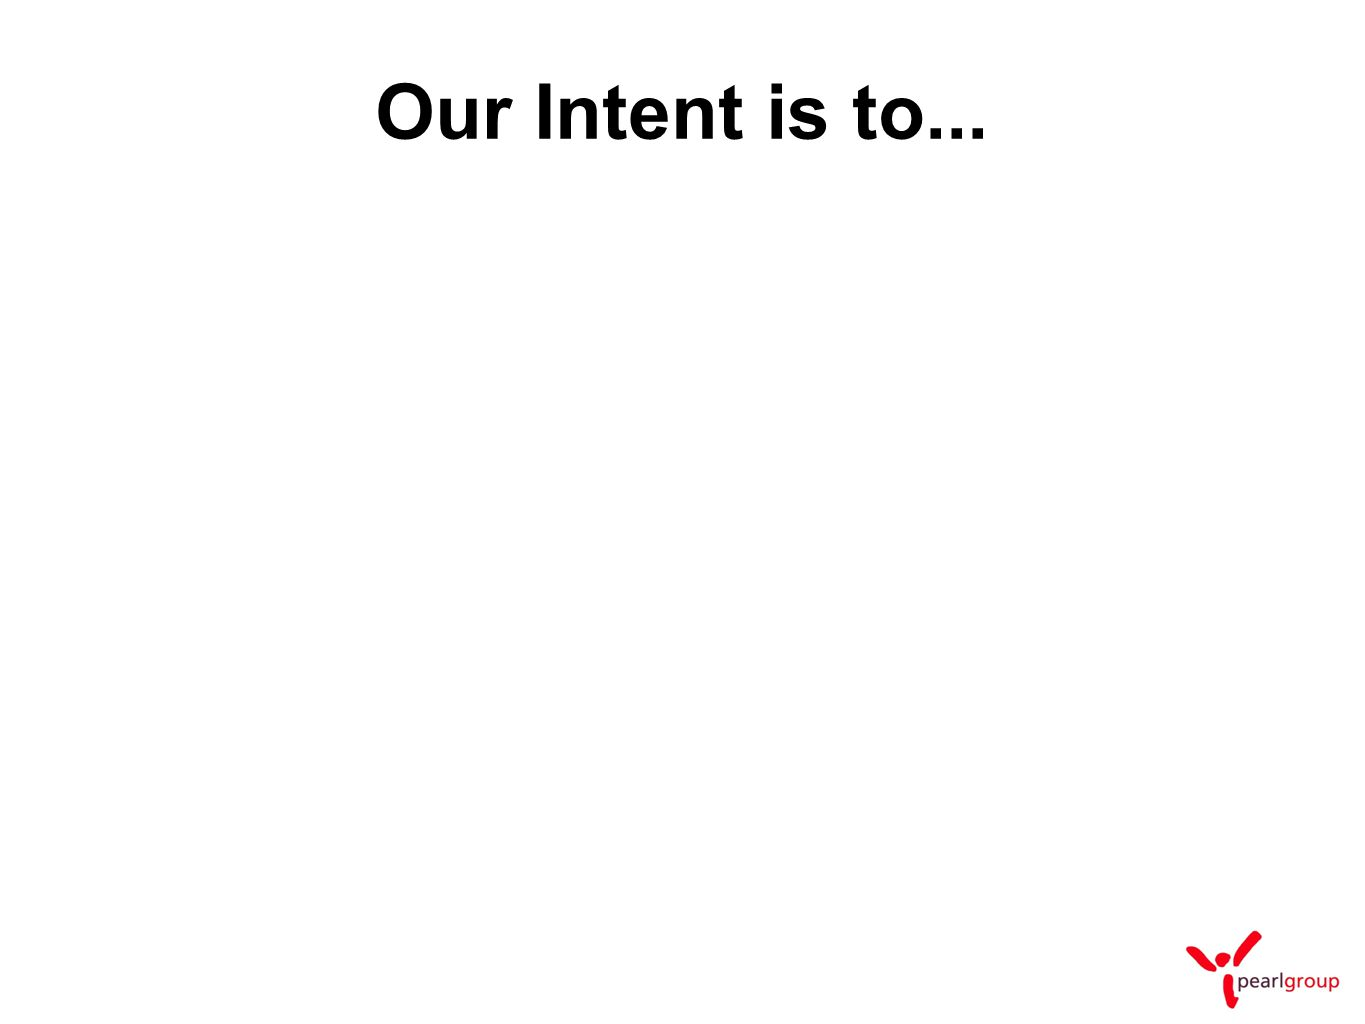 Our Intent is to...